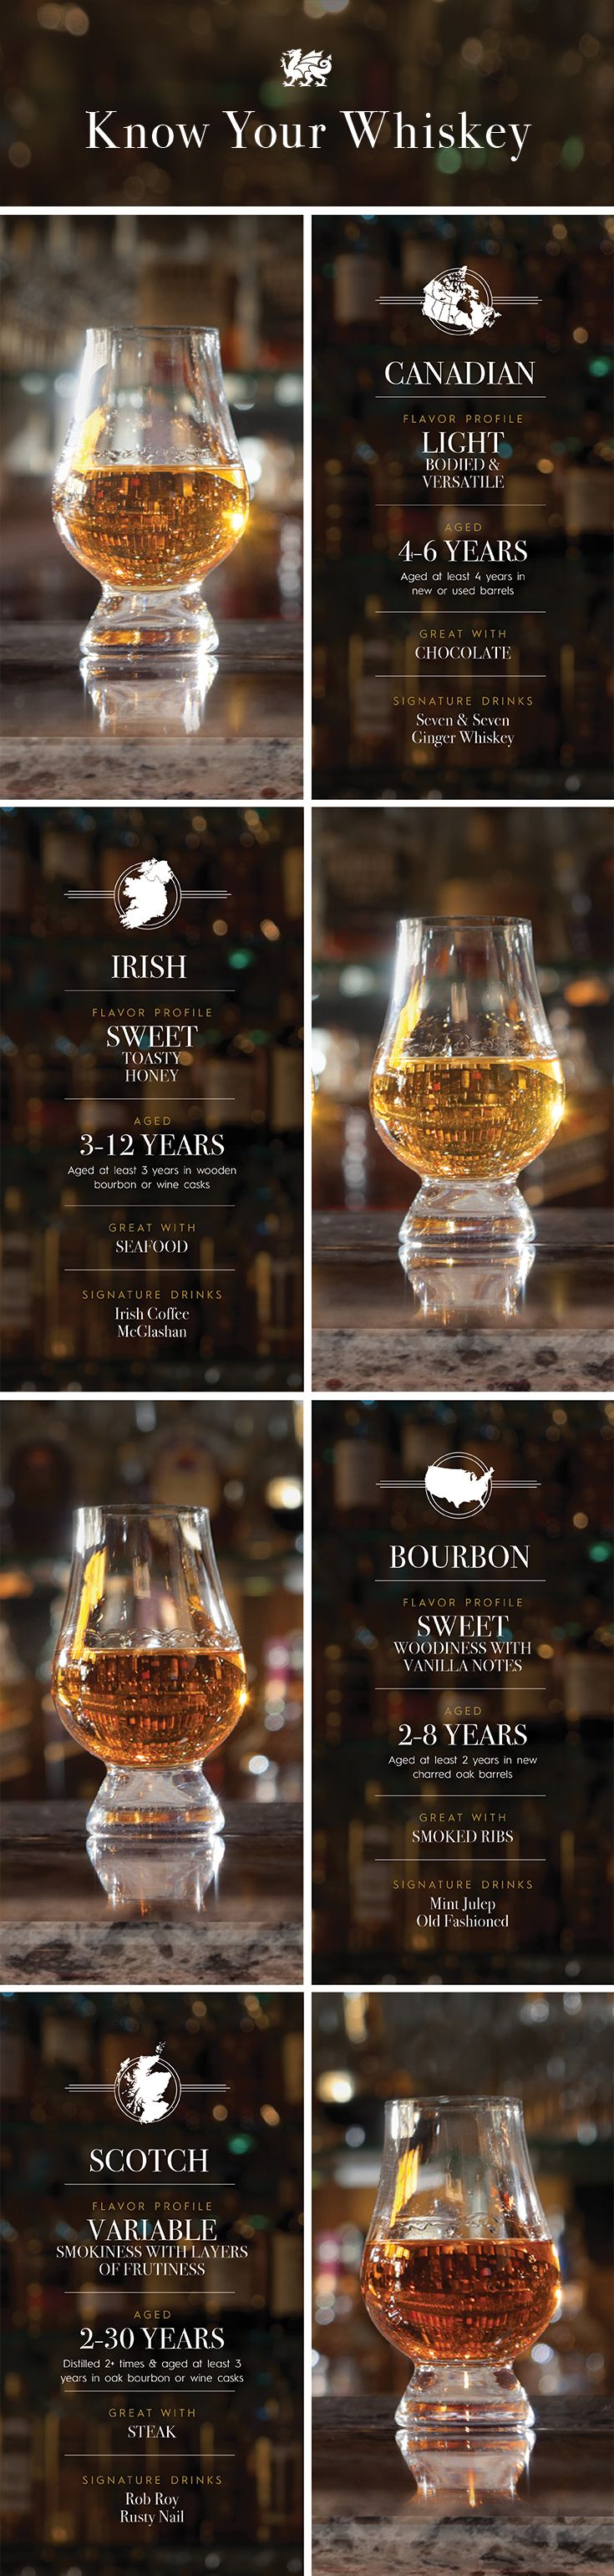 What makes bourbon different than scotch? Age and region influence each liquor's flavor profile, which can make one better suited for seafood and another better with steak #Infographic #infografía